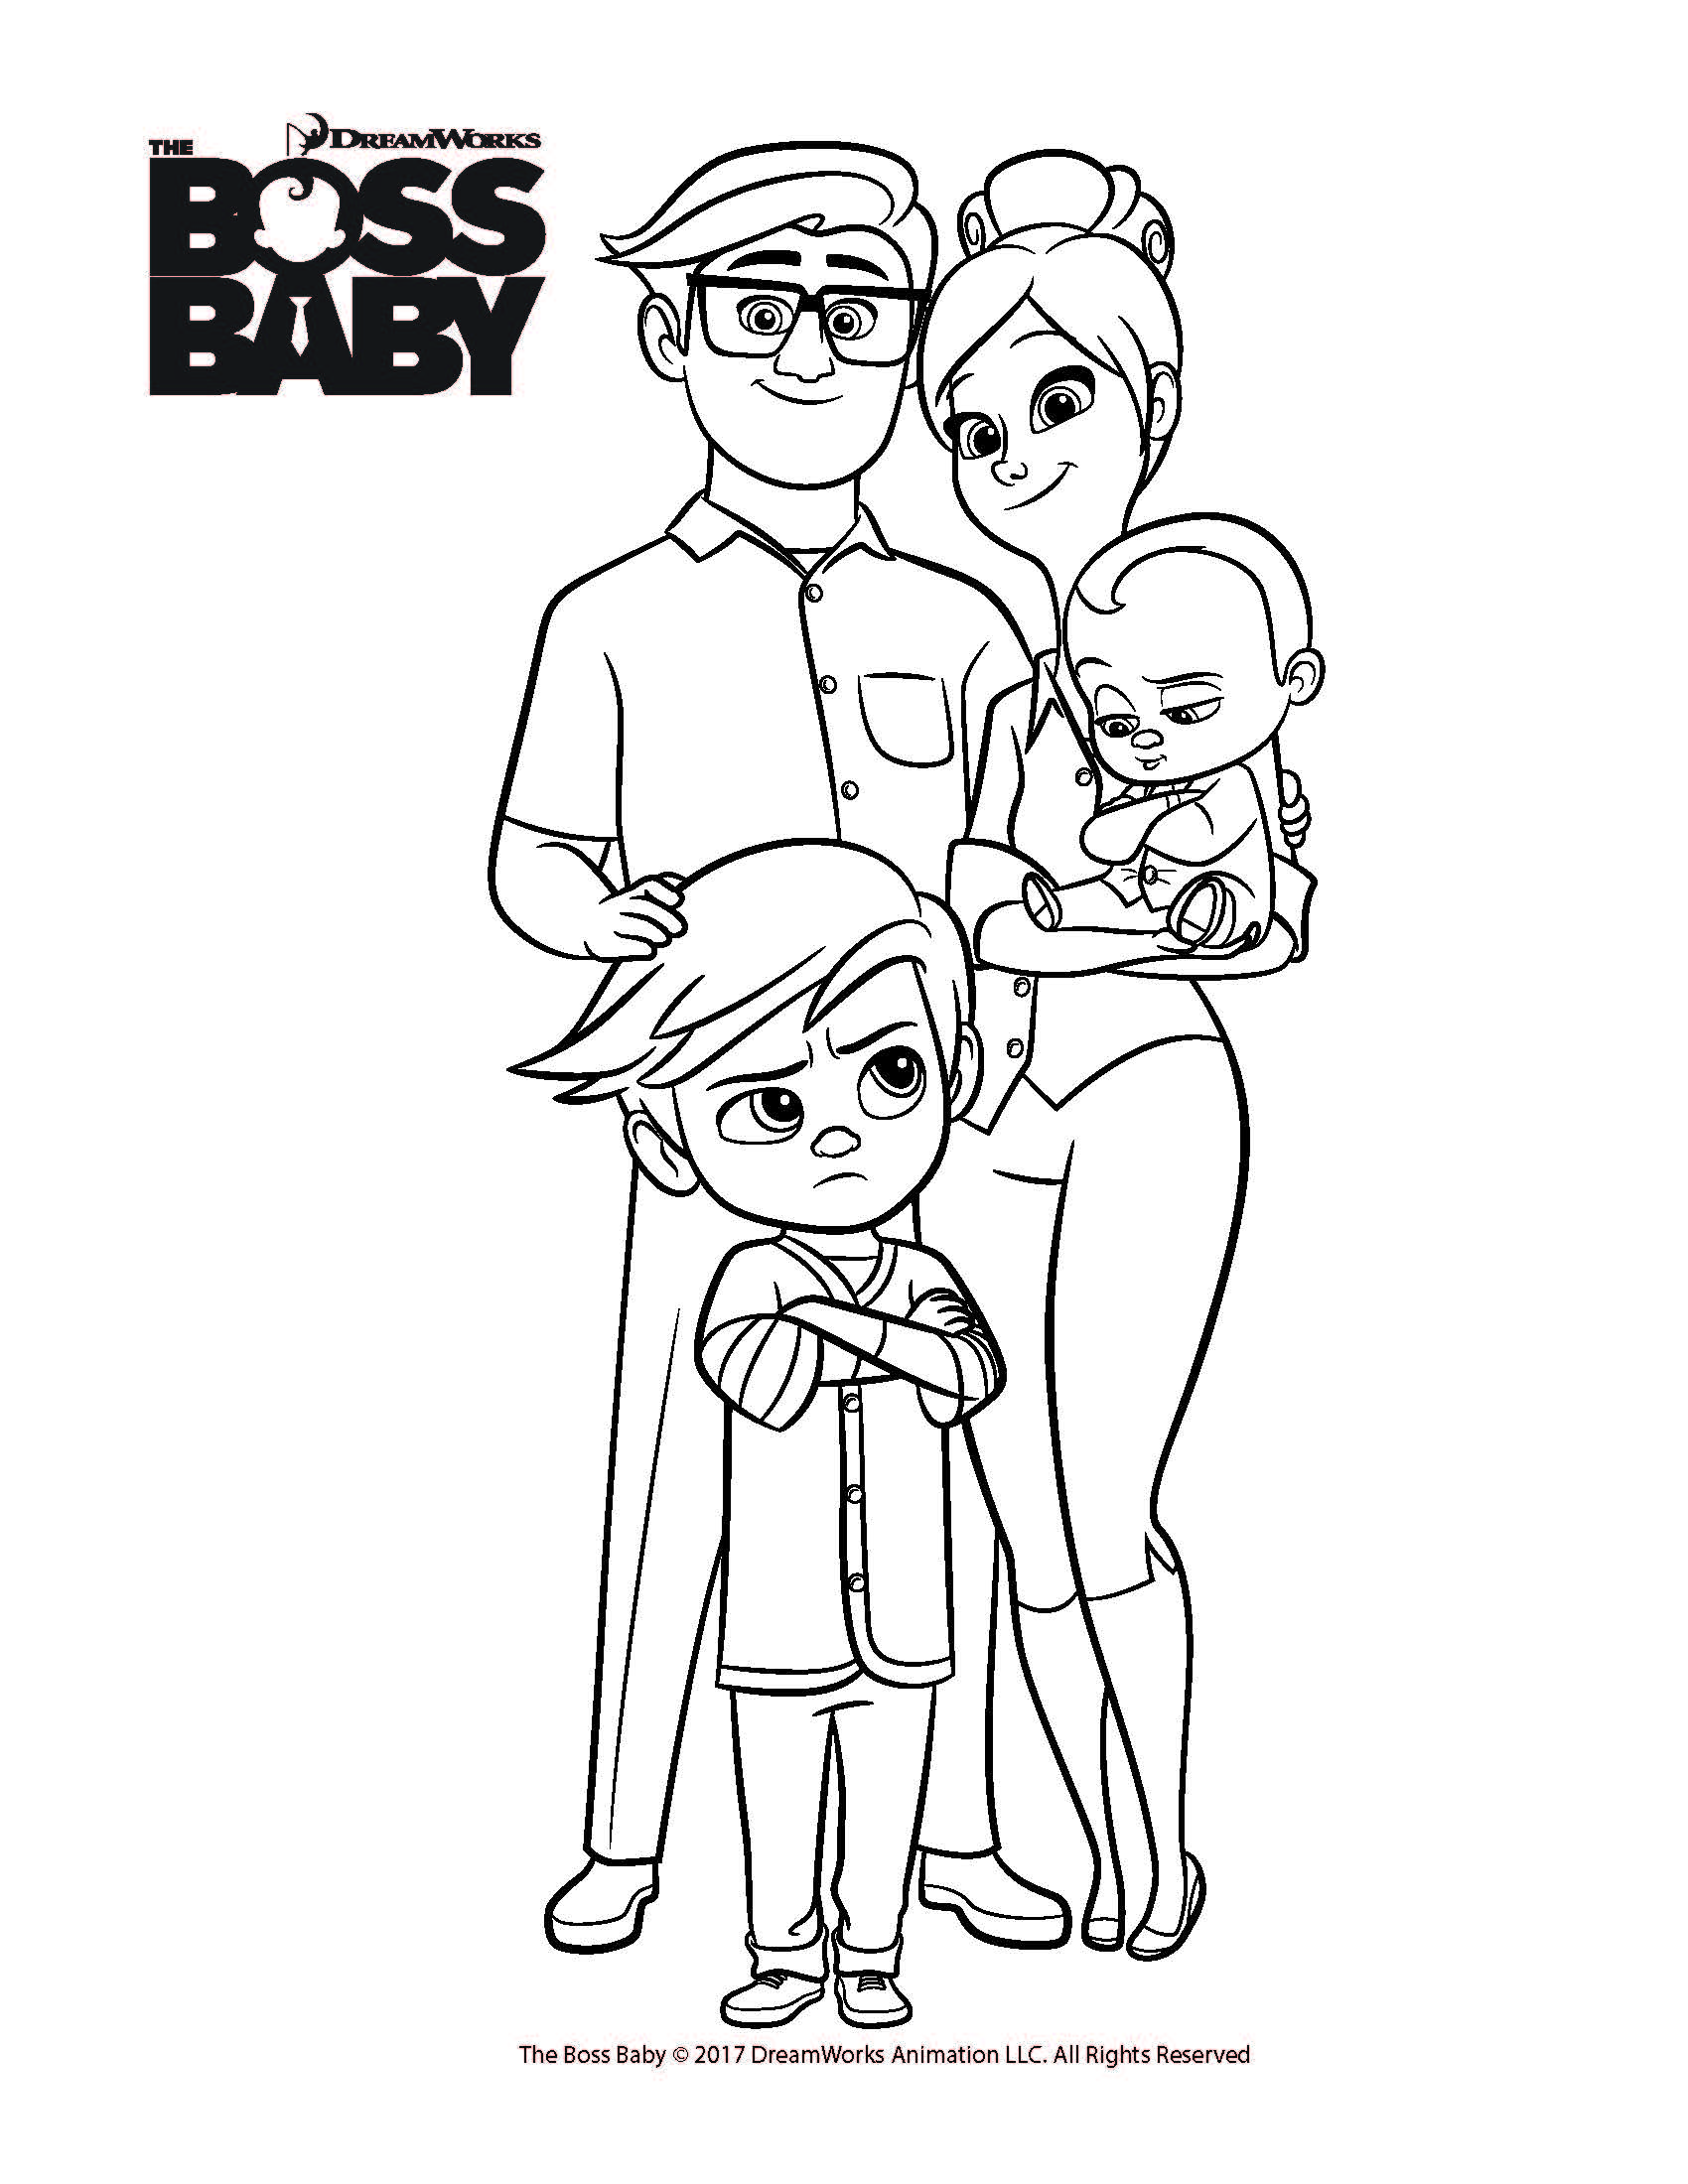 Coloring sheets of babies - Boss Baby Coloring Pages 13 Coloring Pages For Kids Pinterest Boss Baby And Babies